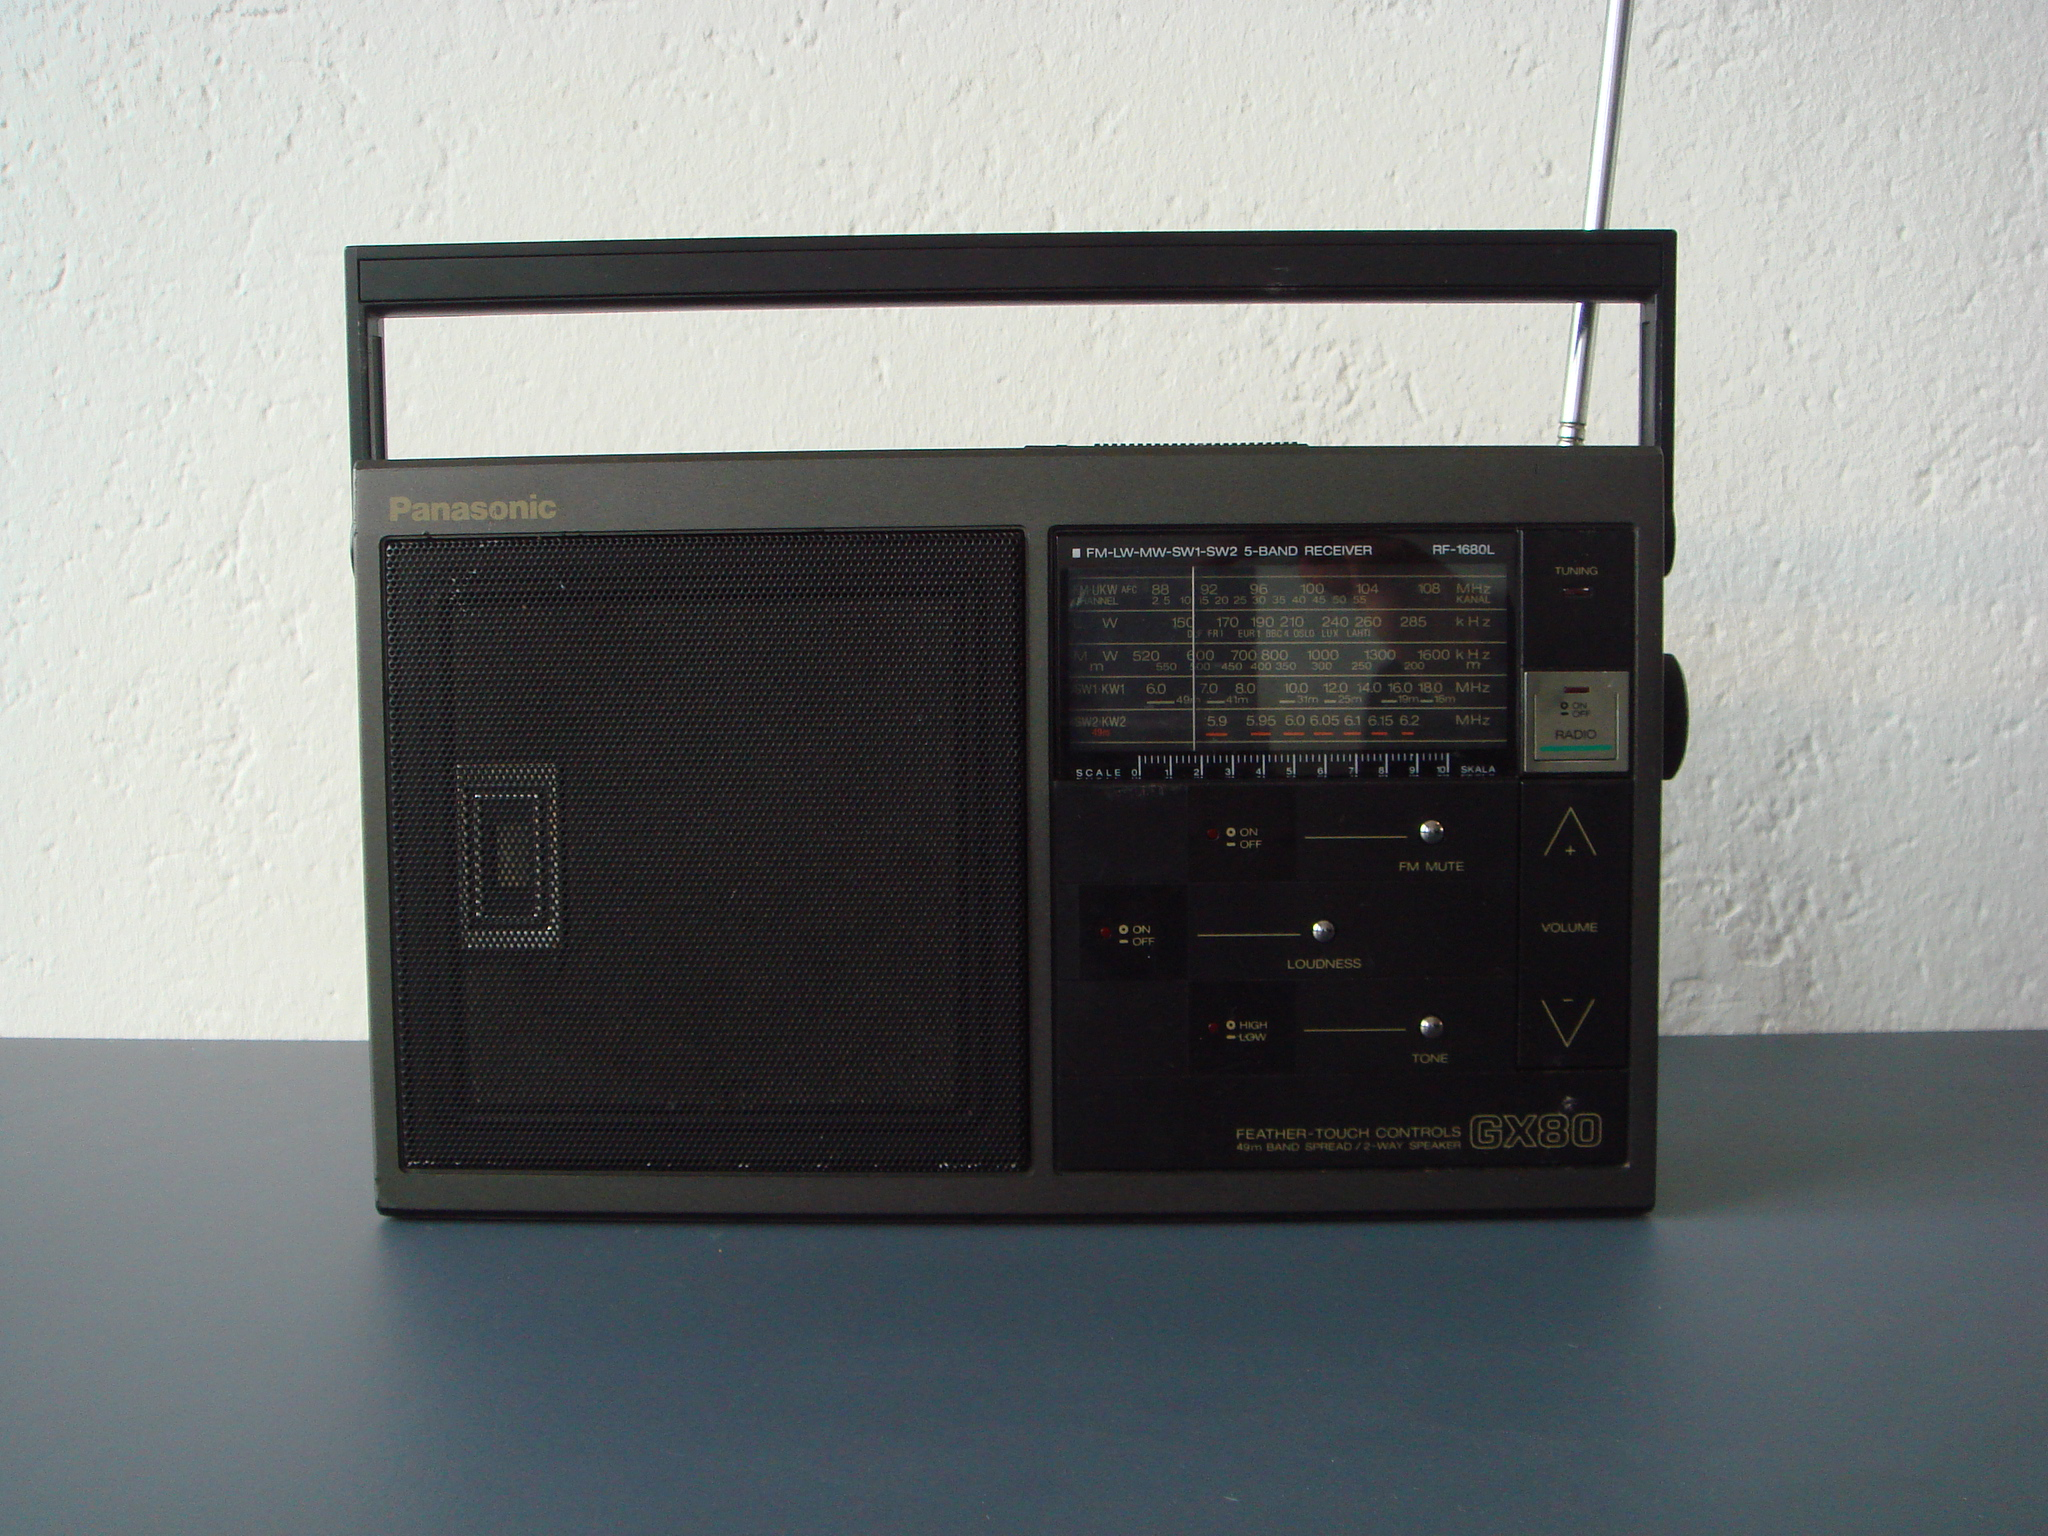 panasonic feather touch controls